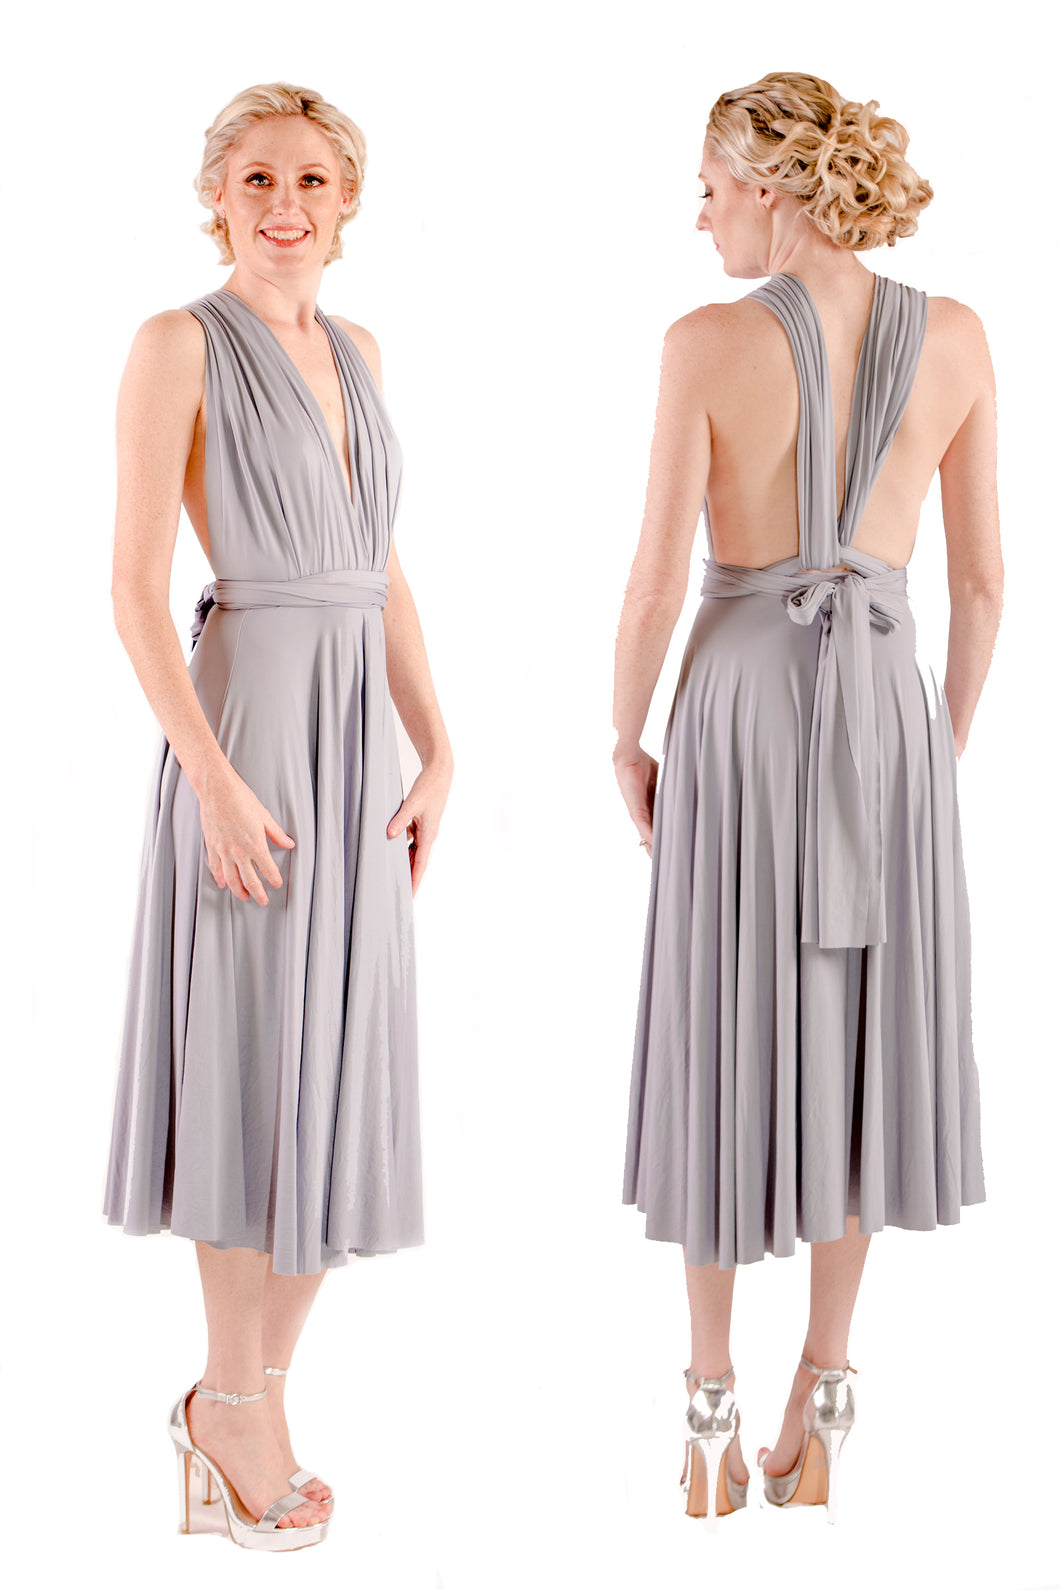 On Sale French Grey Wedding Bridesmaid Formal Convertible Wrap Multi-way Mid-length Tea-Length Dress Lucy and Loo Style and Scents